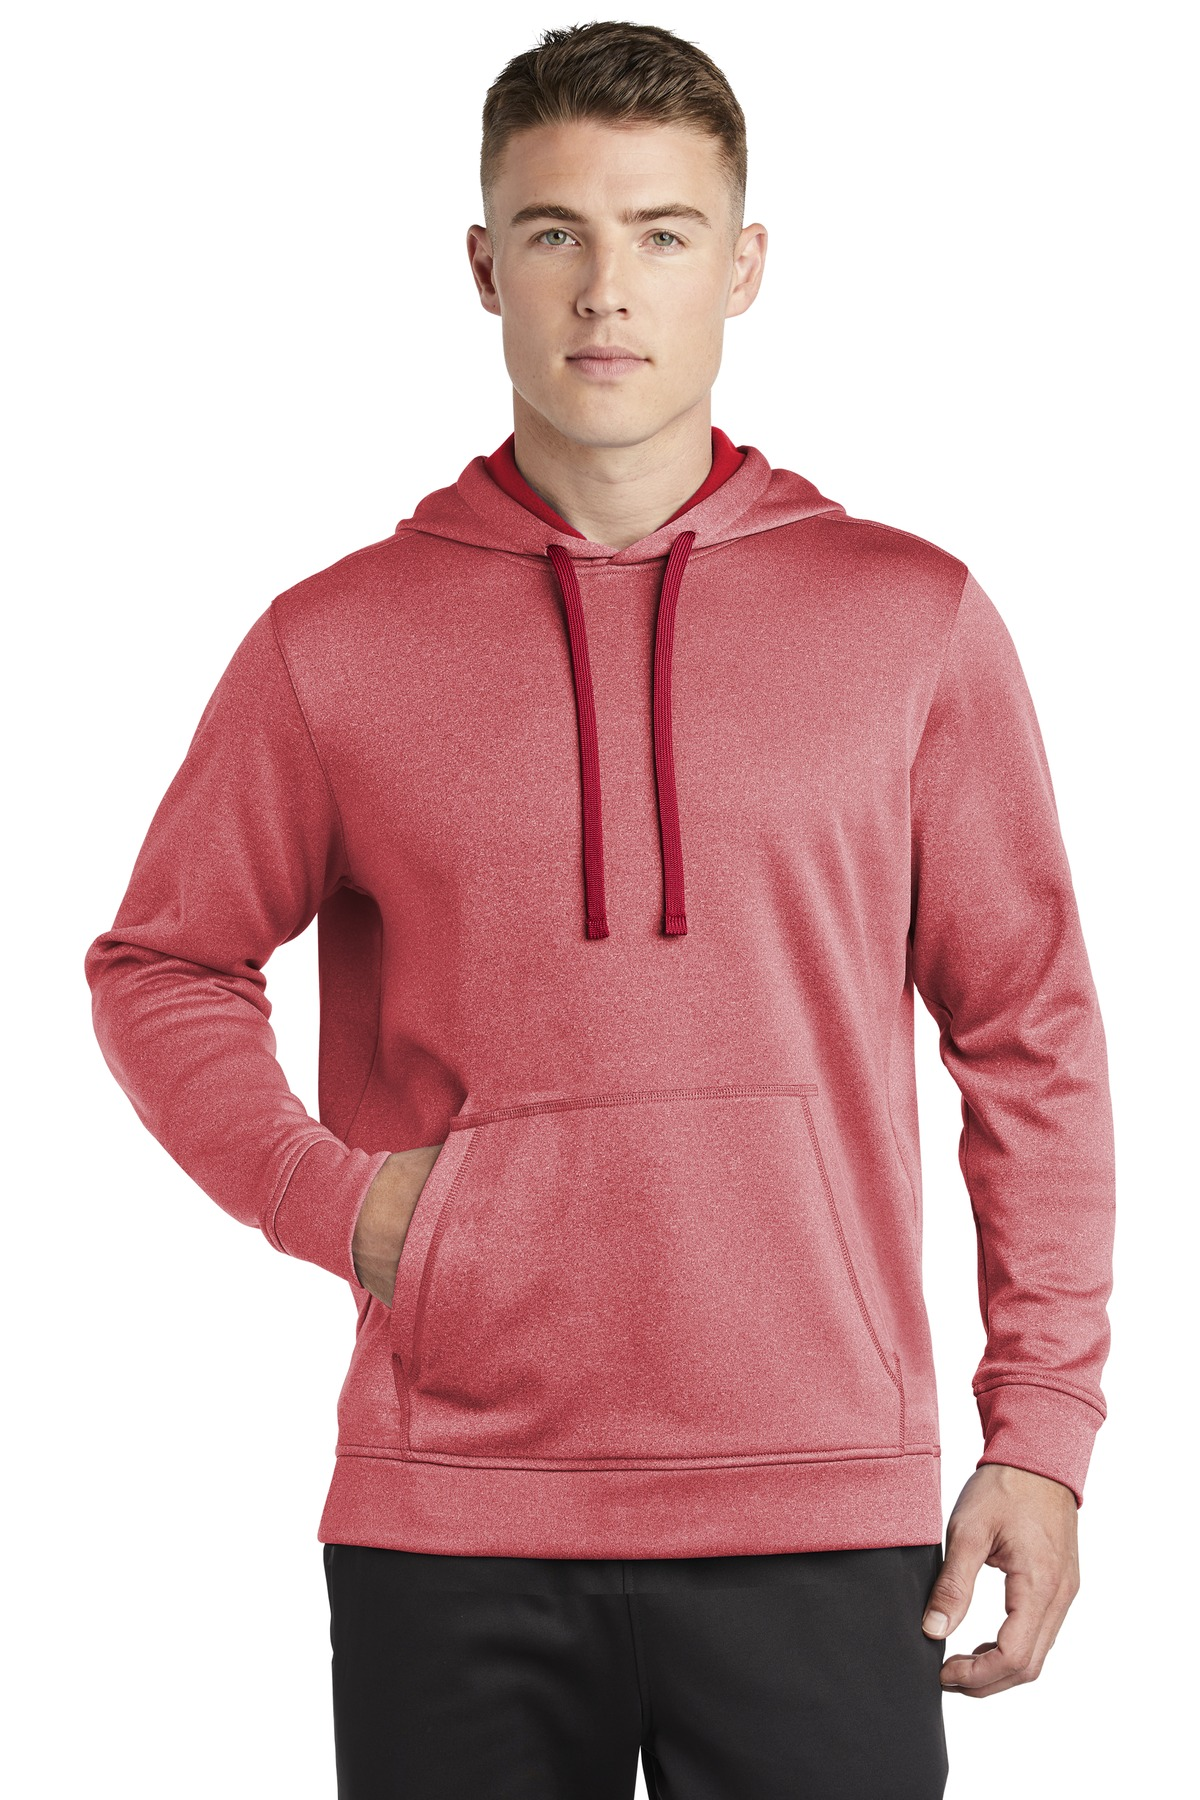 Sport-Tek  ®  PosiCharge  ®  Sport-Wick  ®  Heather Fleece Hooded Pullover. ST264 - Deep Red Heather